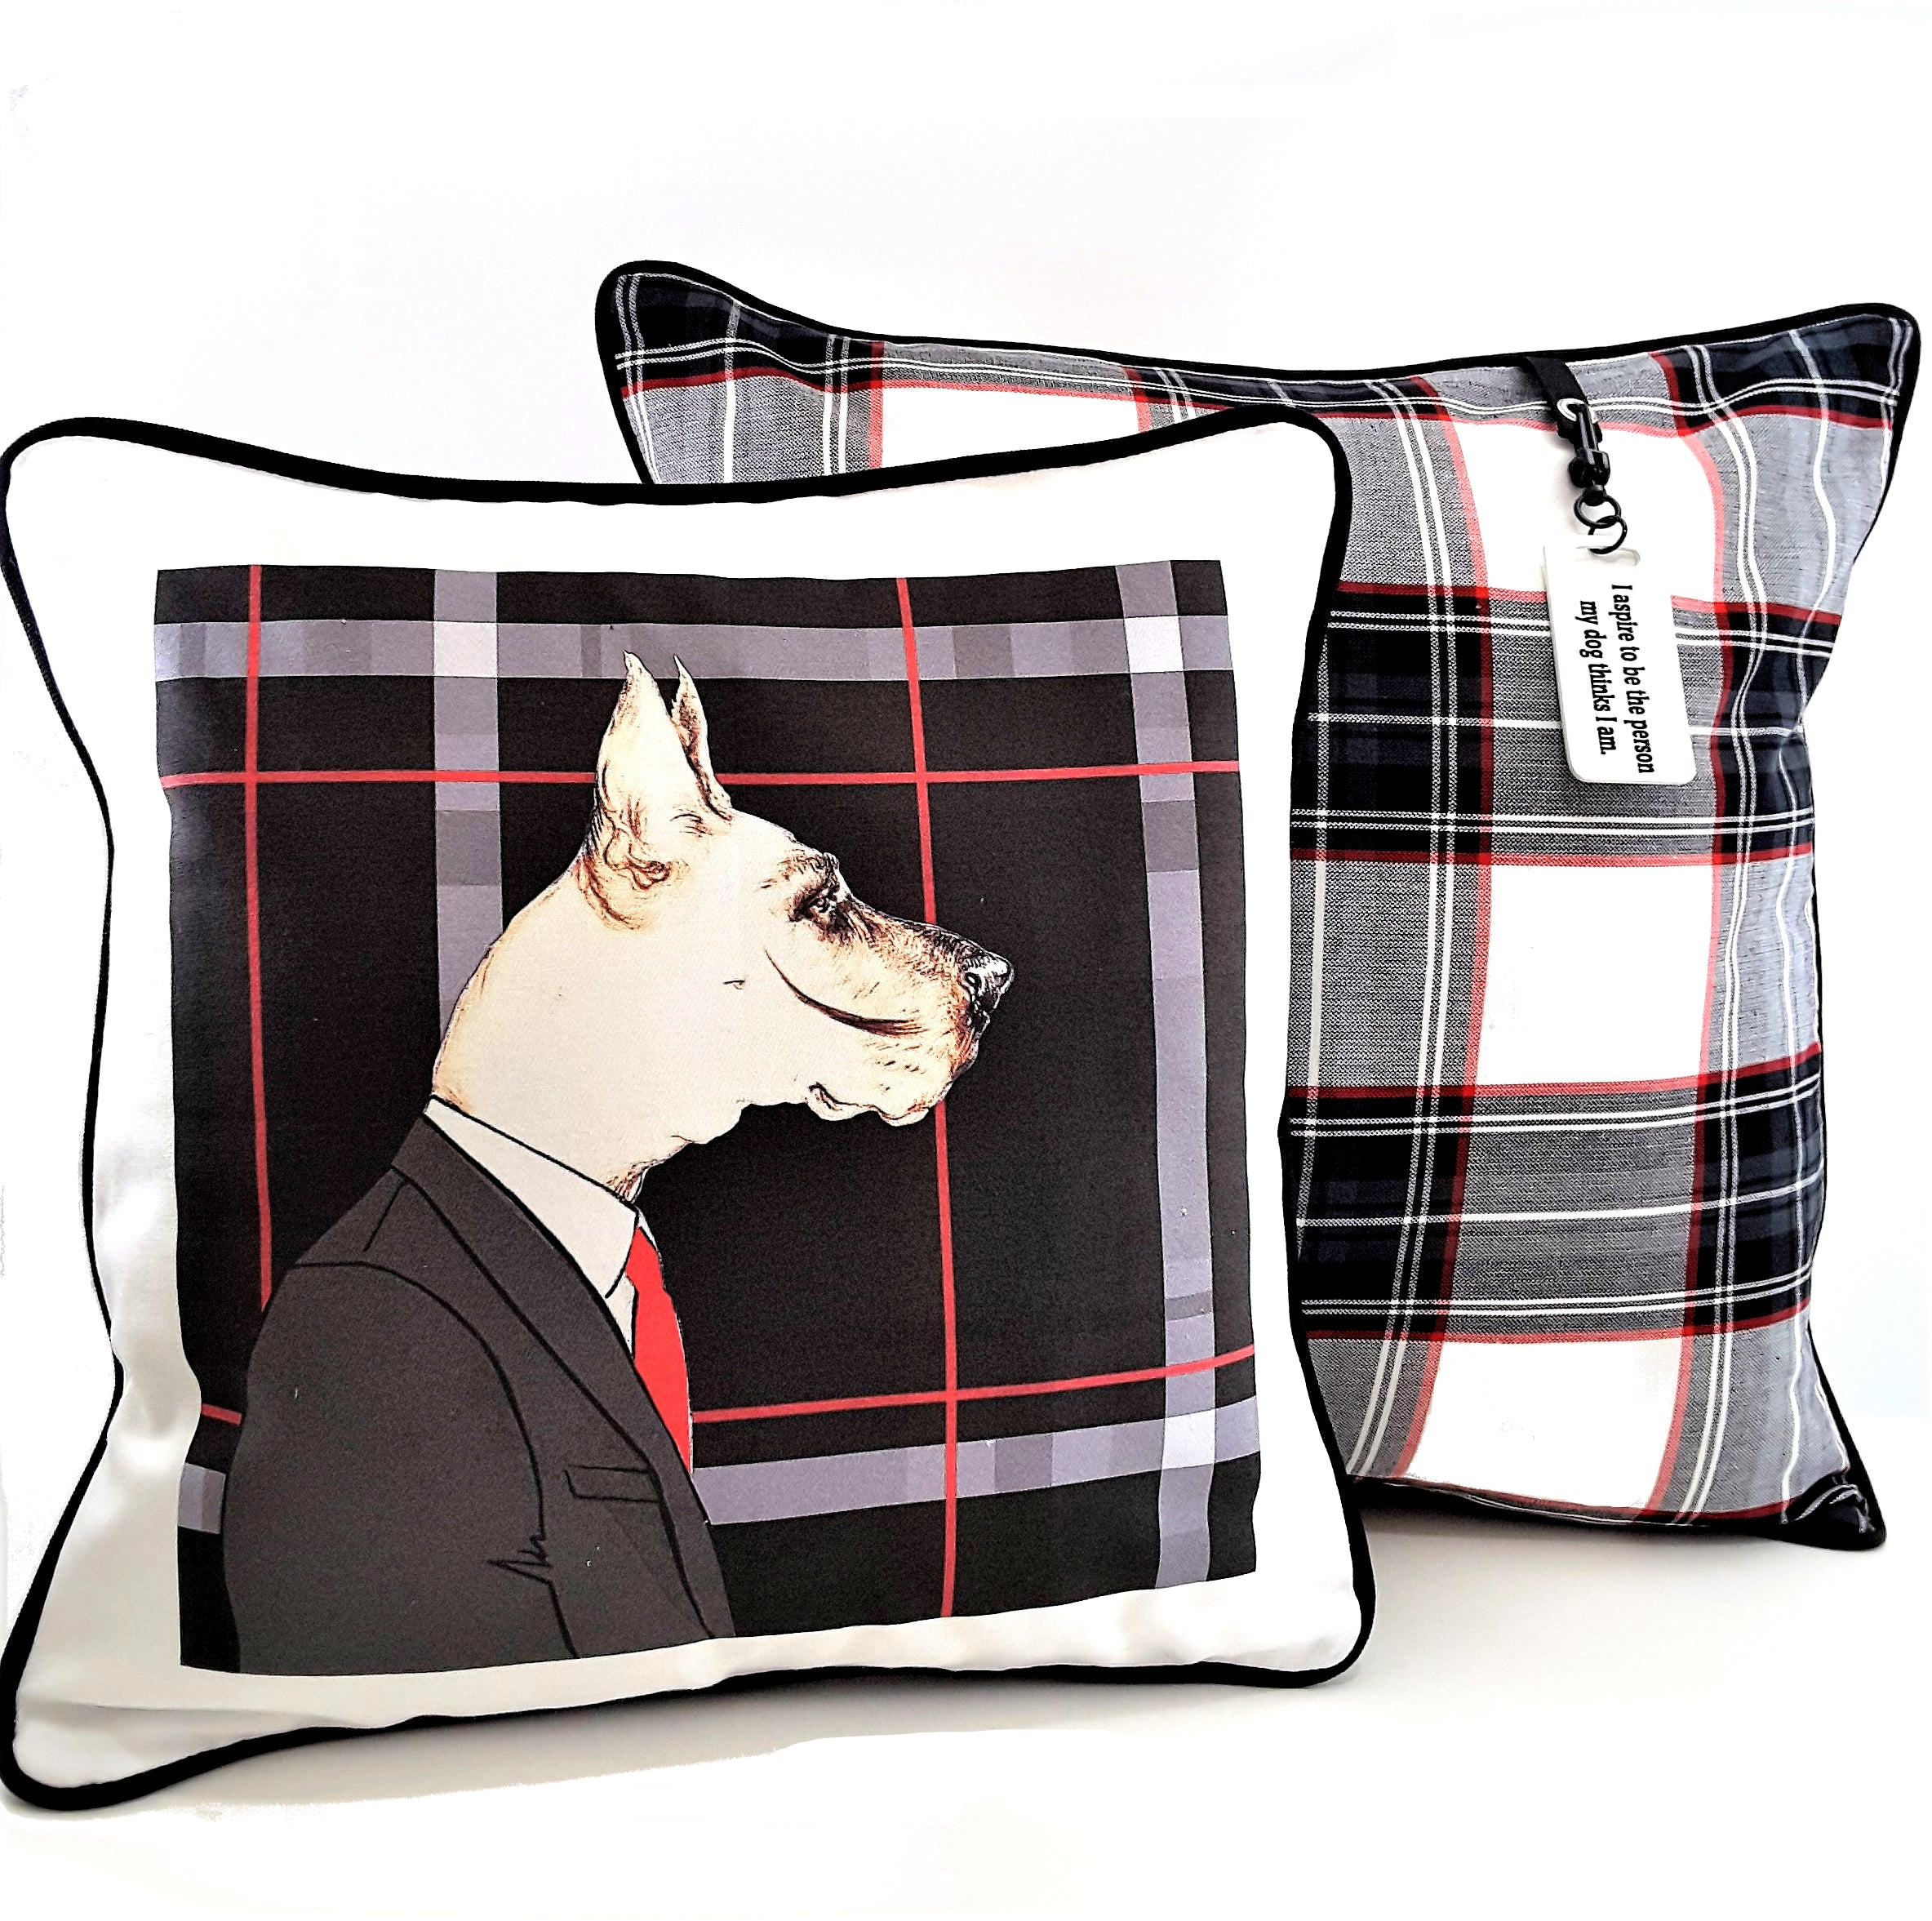 Greyhound Mr. Dog Designer Denim Pillow Cover - The Last Word Bish